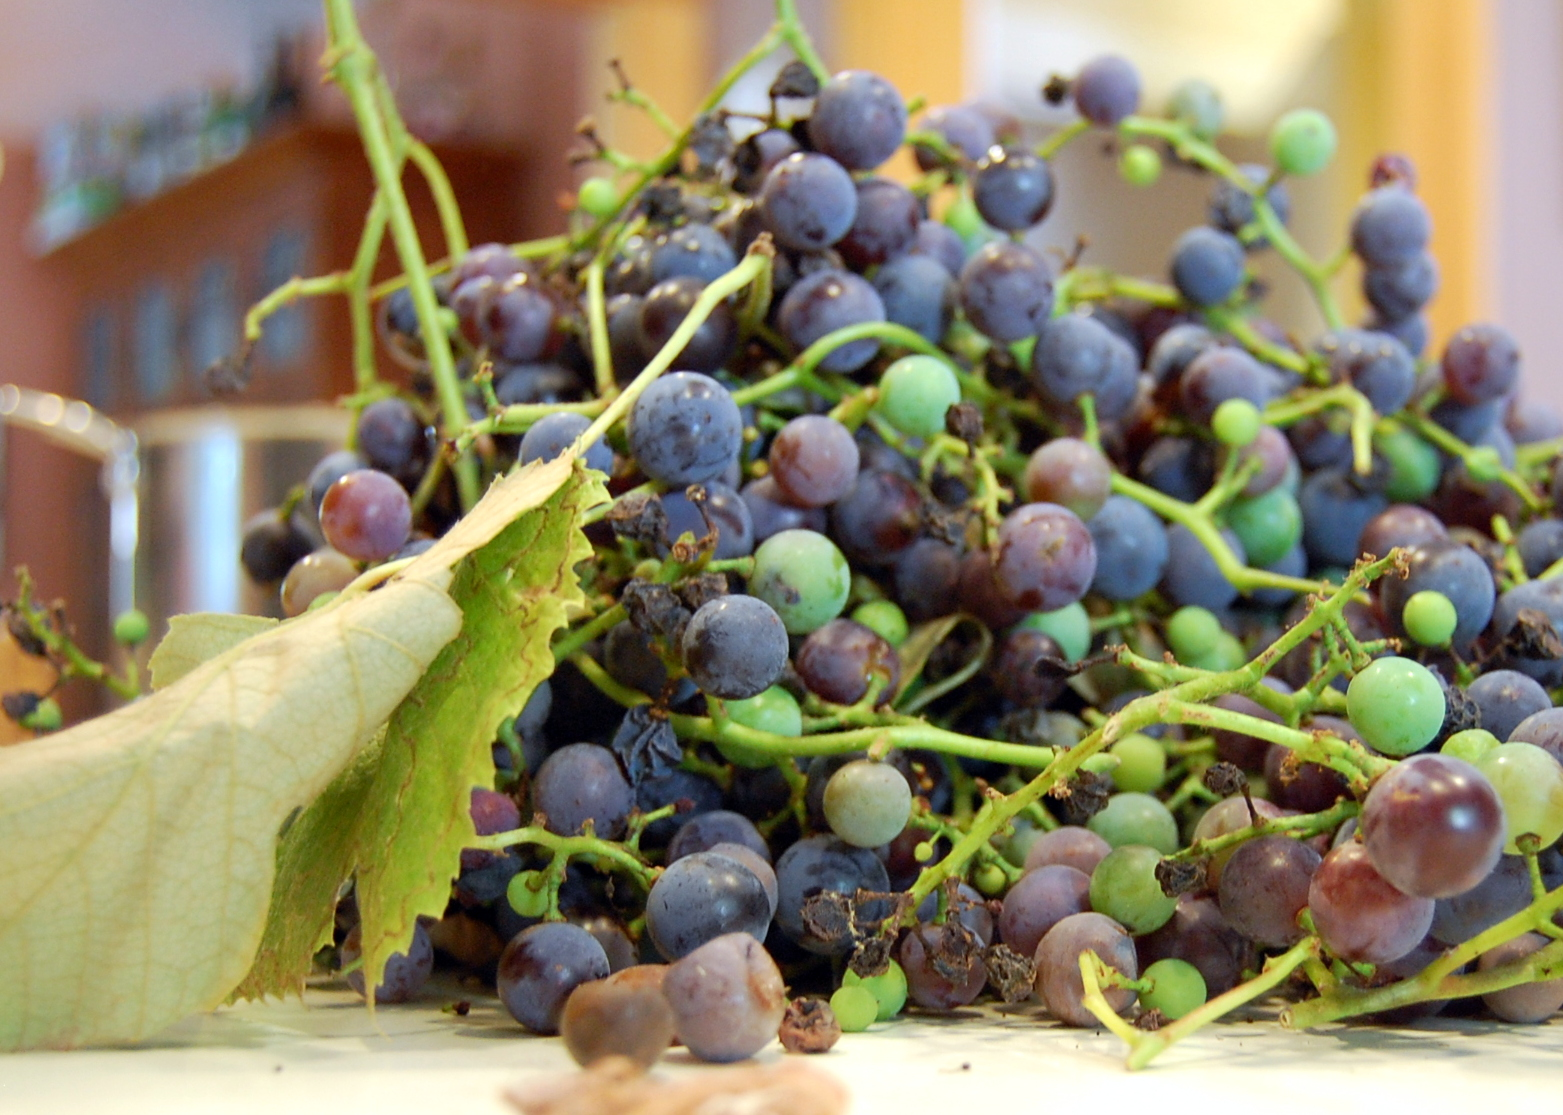 Spoiled Grapes On The Vine Stock Photo, Picture And Royalty Free ...